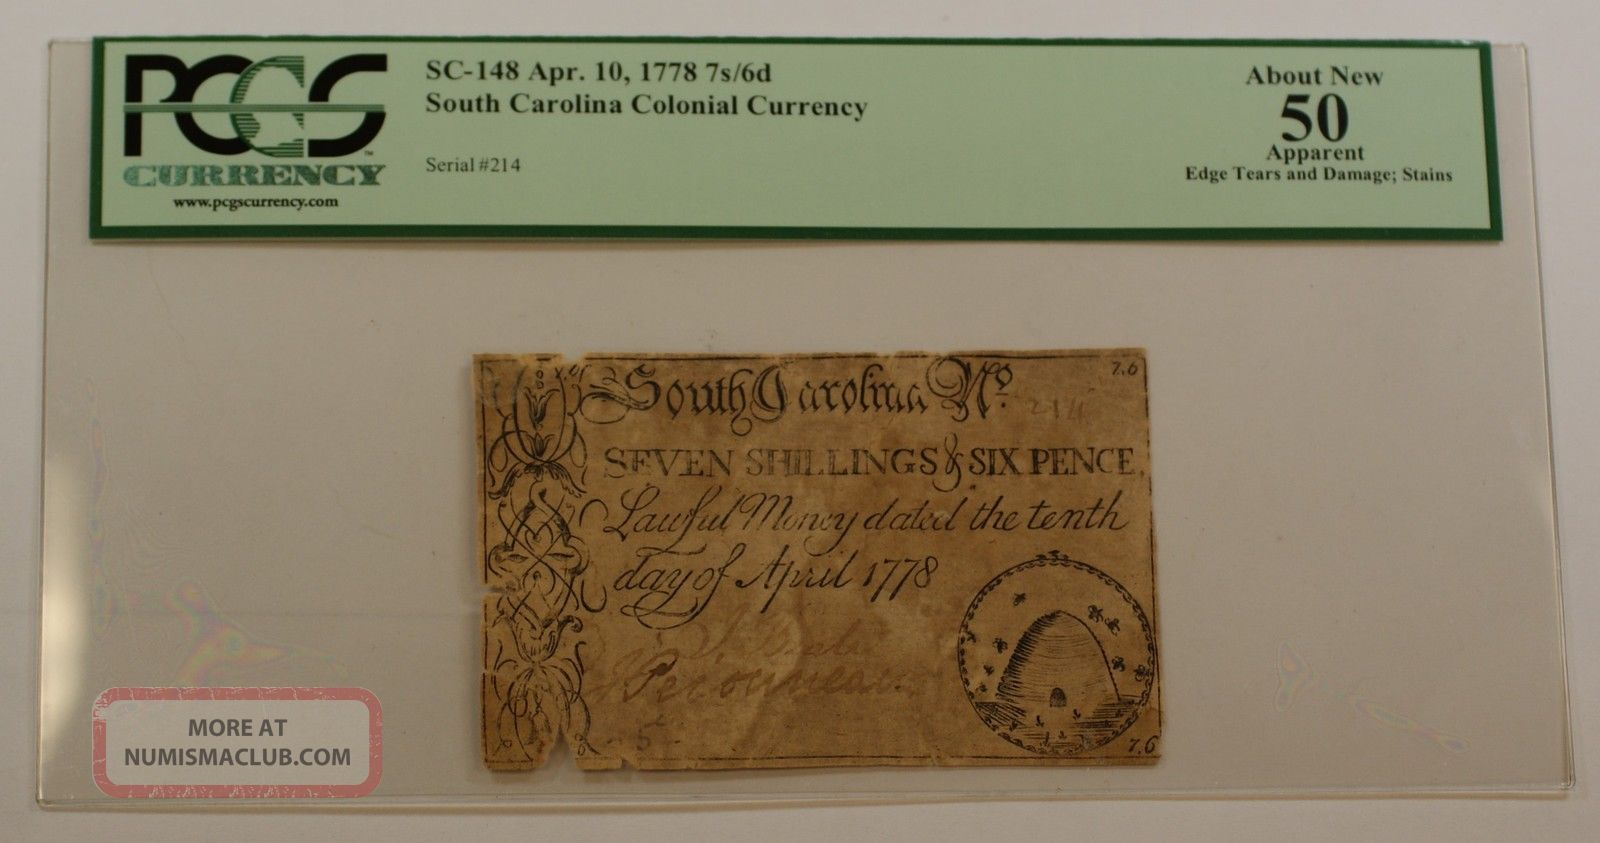 Apr.  10 1778 7s/6d Colonial Currency Note Pcgs About 50 Apparent Sc - 148 Paper Money: US photo